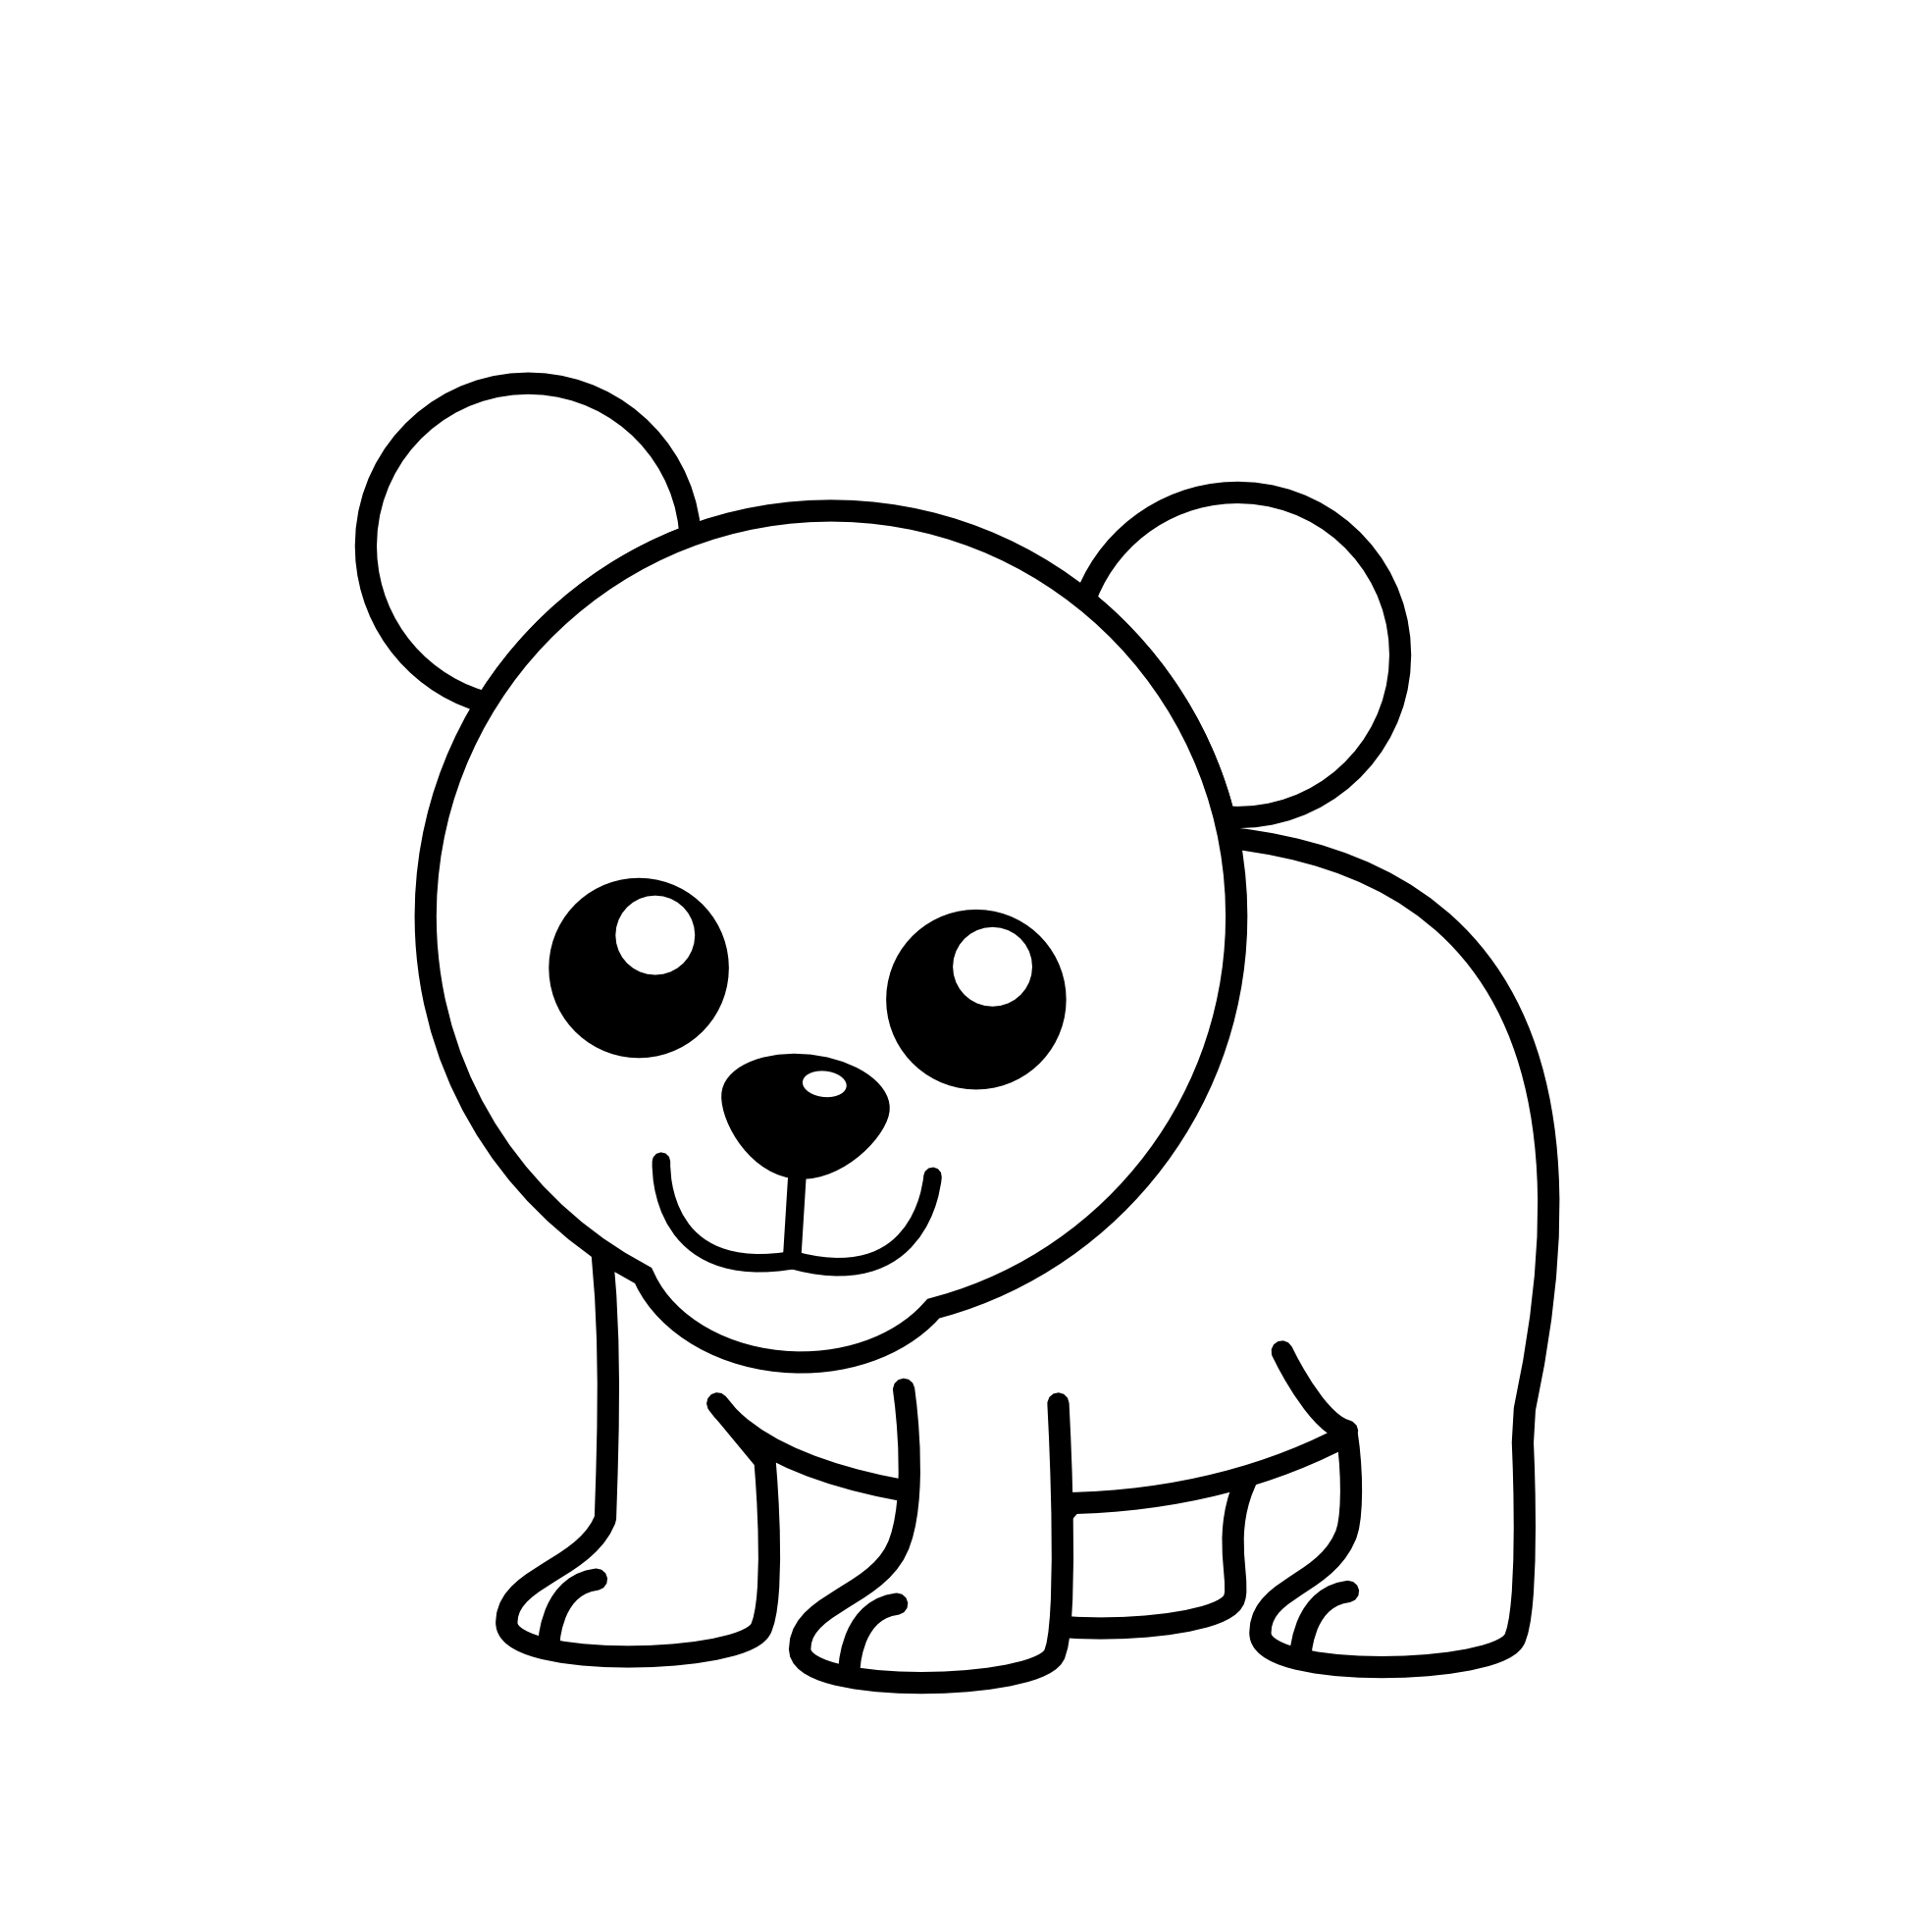 Black And White Clipart Bear - ClipArt Best